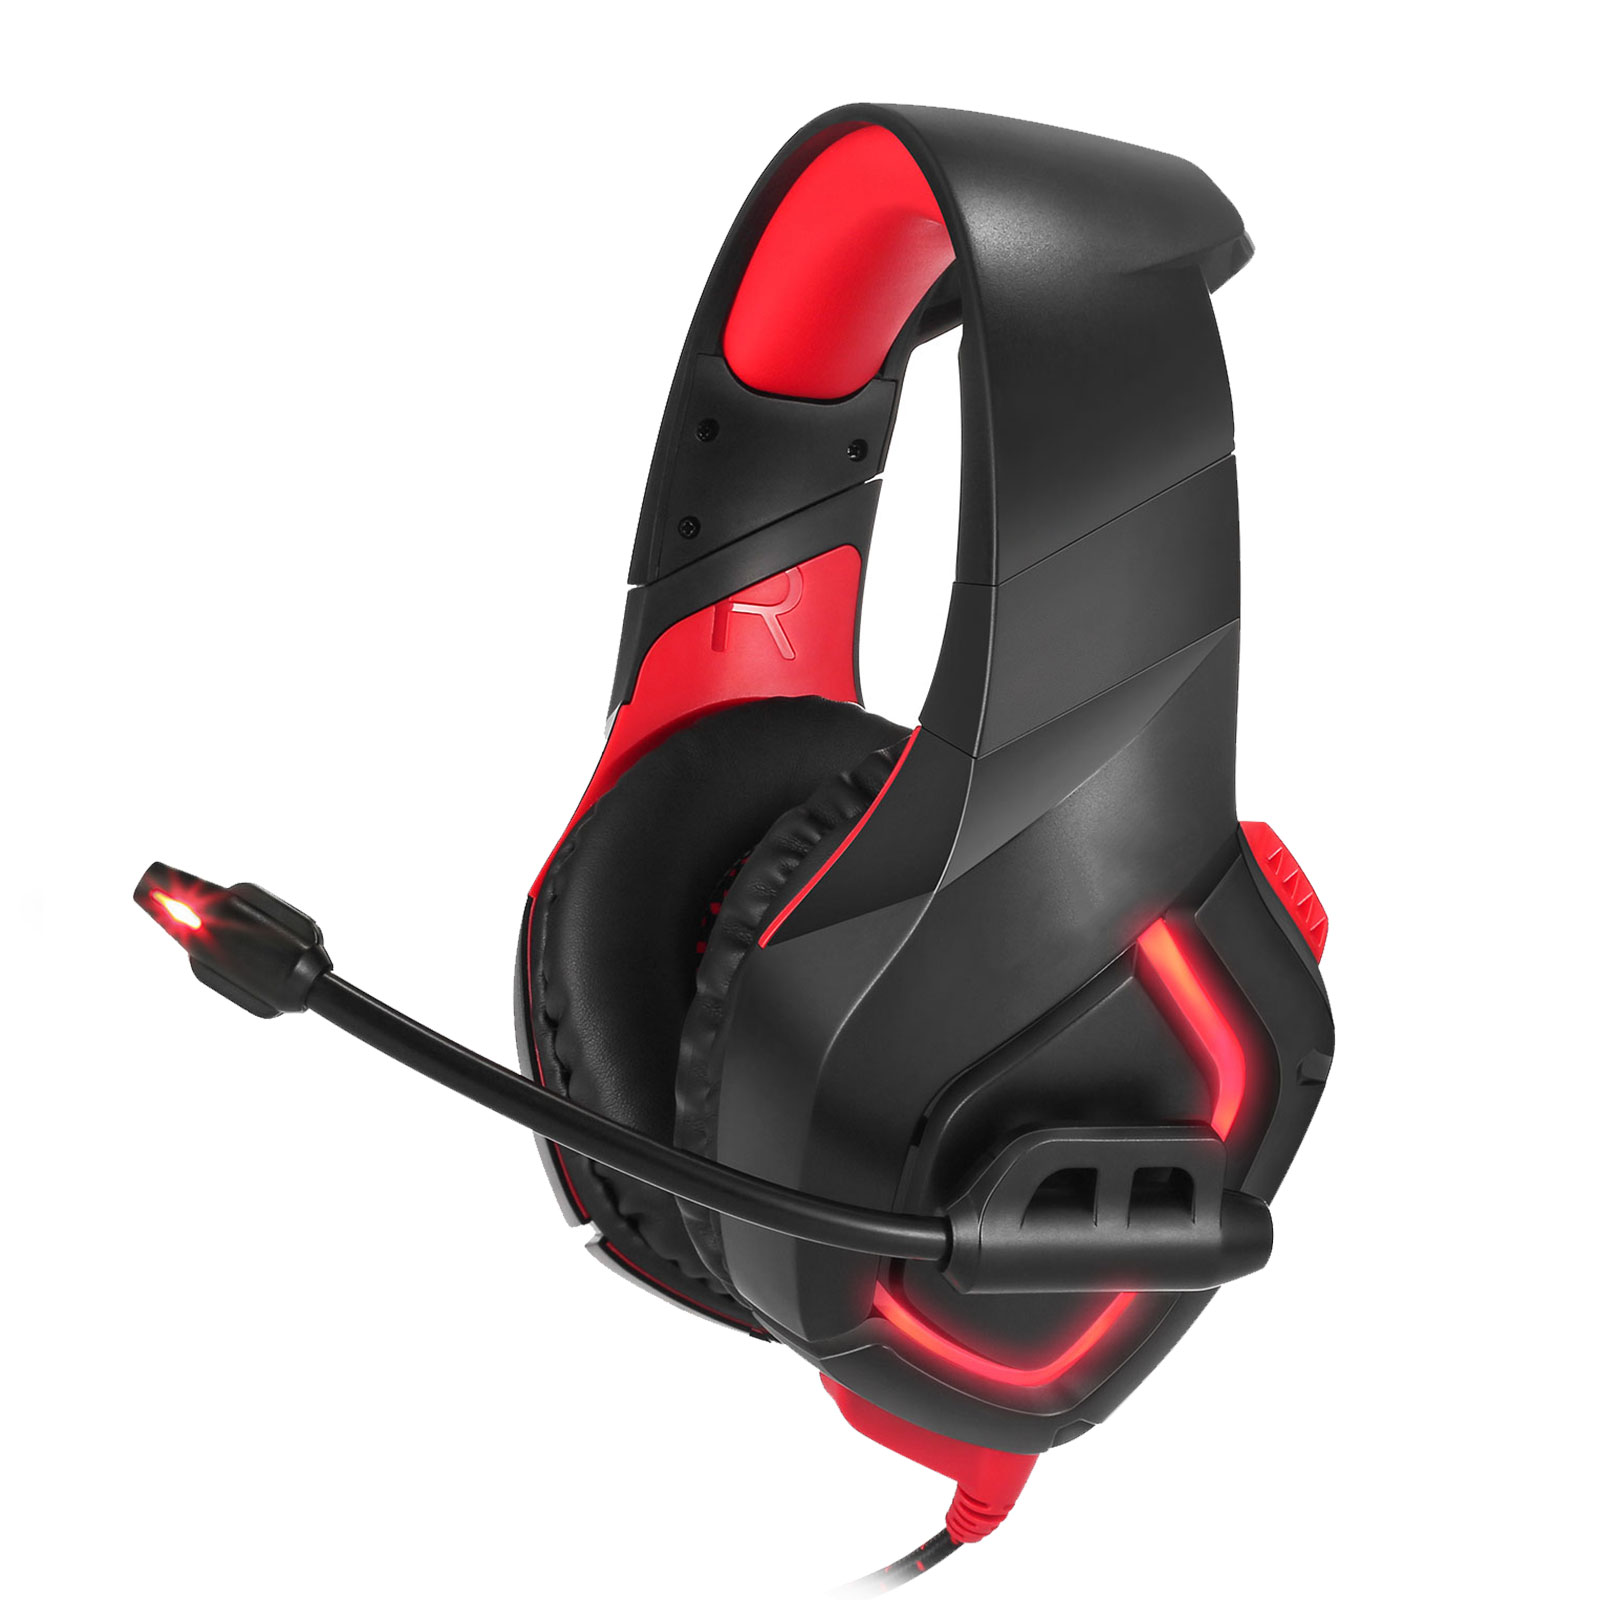 TSV K1-Pro Stereo Bass Surround Headphone 3.5mm Wired Gaming Headset with Noise Reduction Mircophone for PS4 Xbox One Switch Computer Laptop